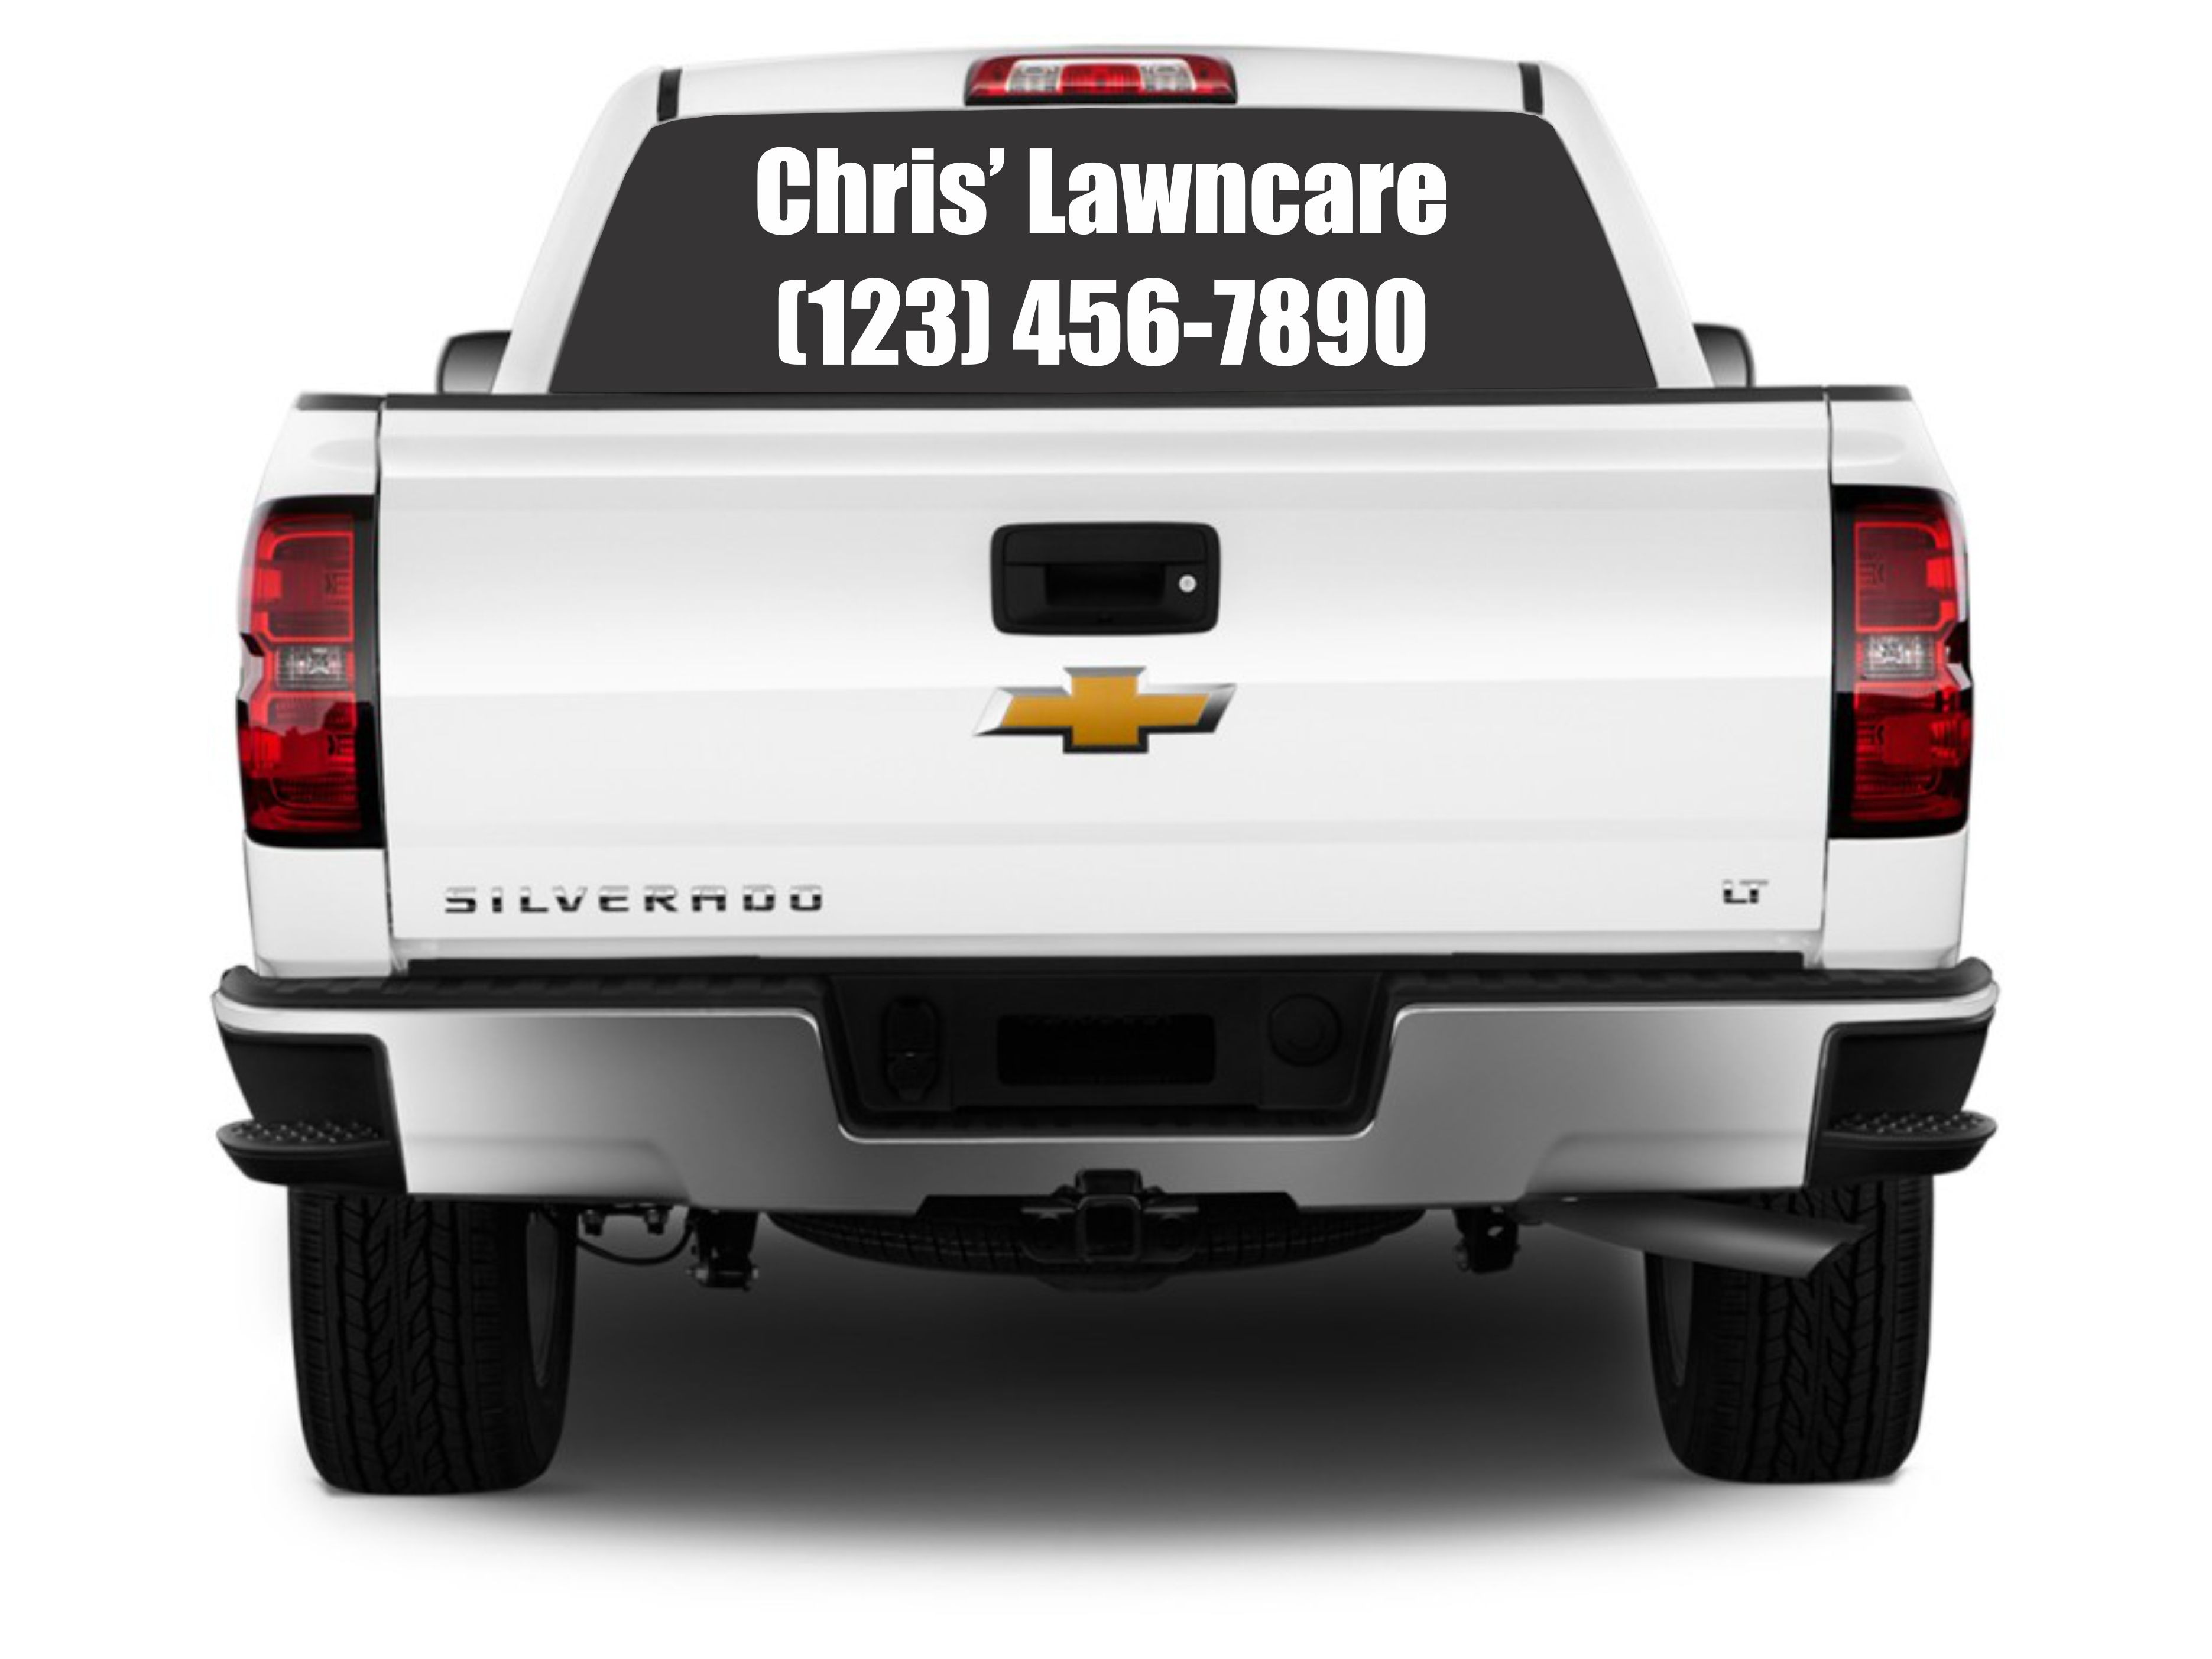 Thanks Chris Lawncare For Your Vinyl Decal Backglass Order - Vinyl decals for your car